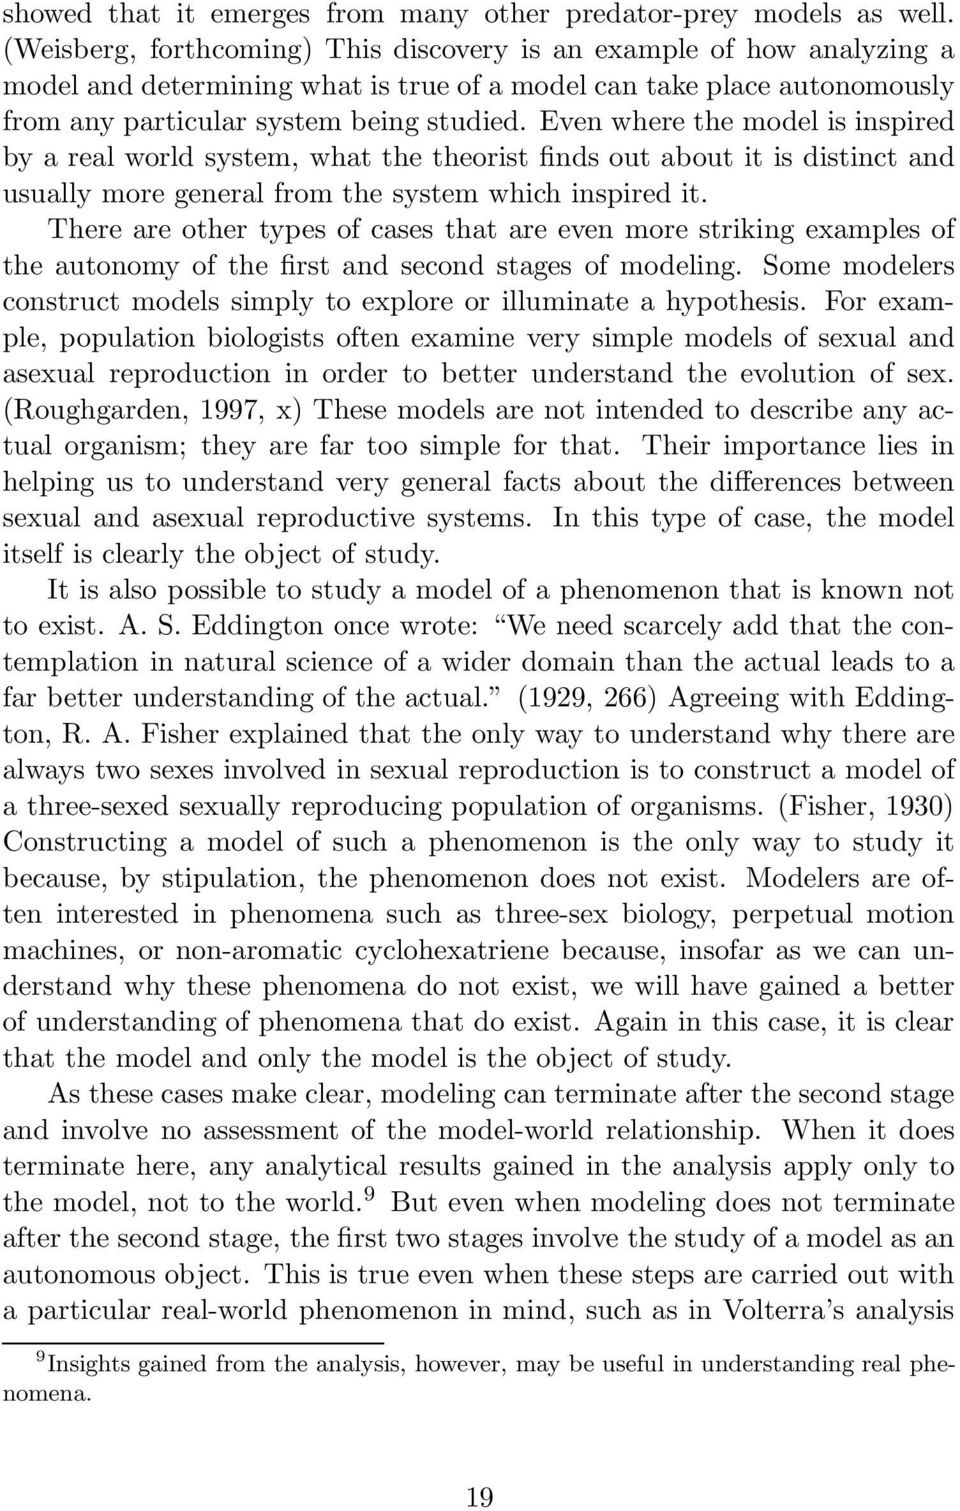 Even where the model is inspired by a real world system, what the theorist finds out about it is distinct and usually more general from the system which inspired it.